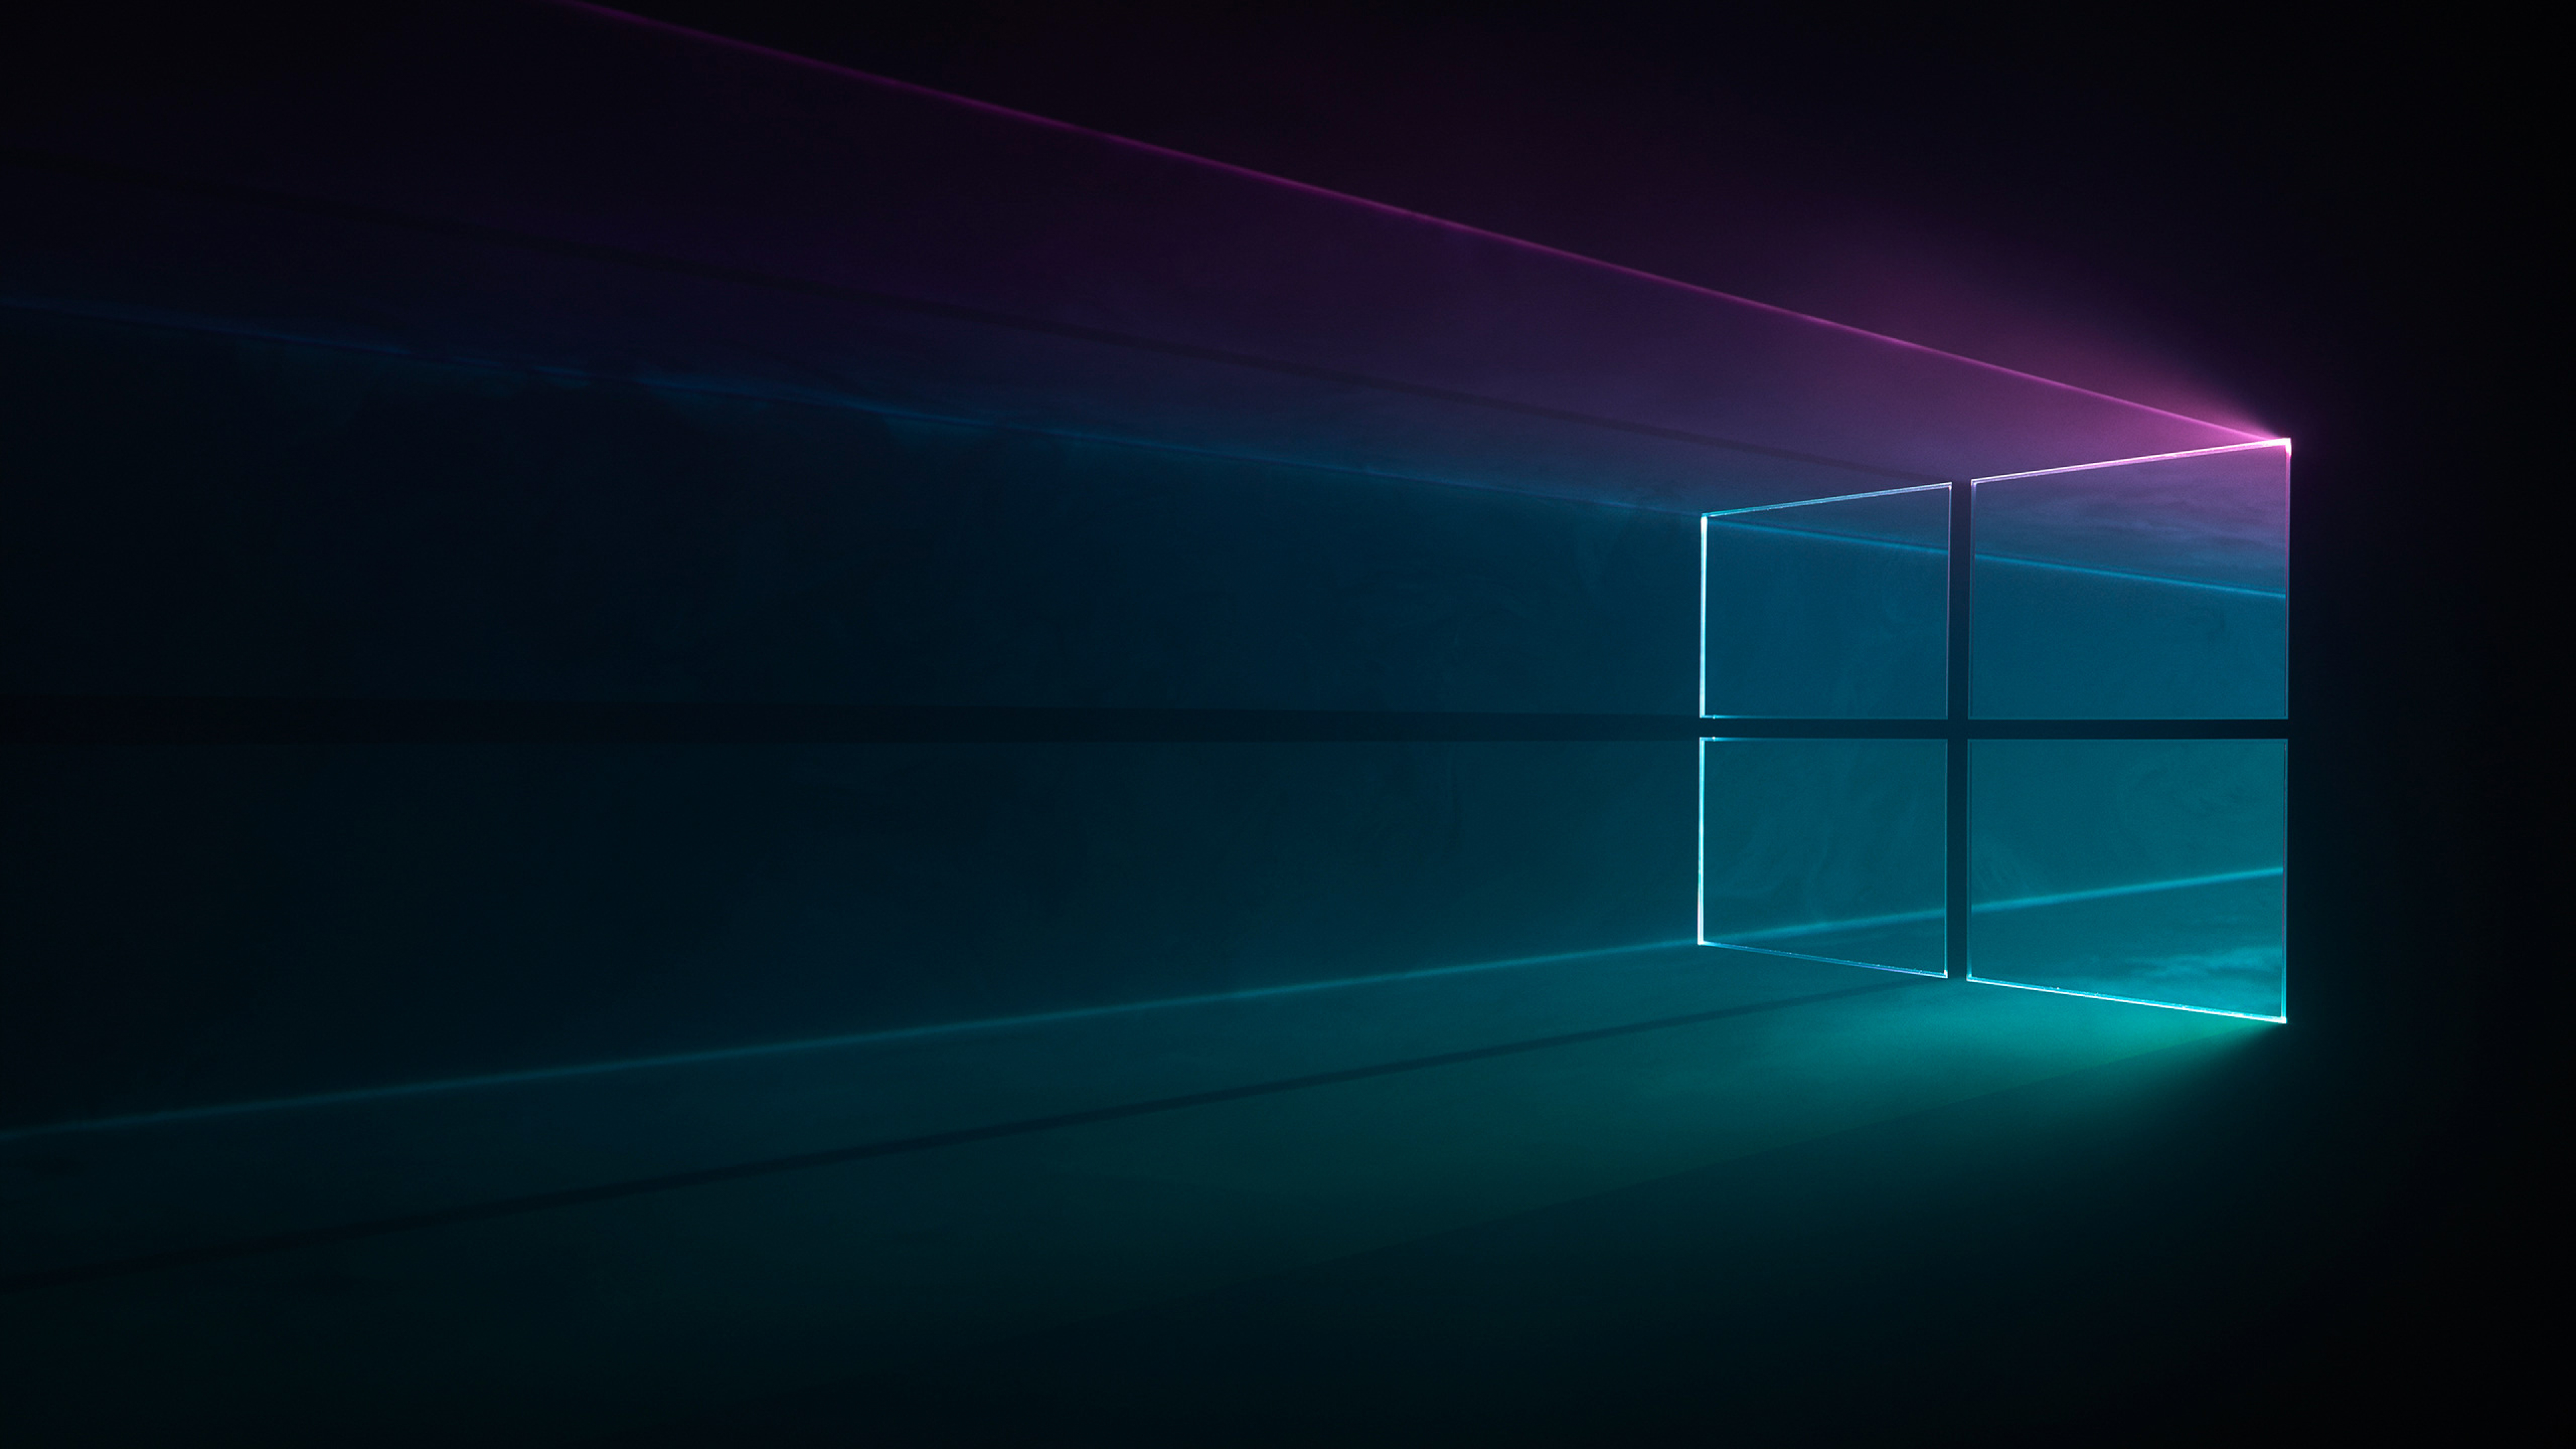 3840x2160 Windows 10 Dark 4k Wallpaper Hd Hi Tech 4k